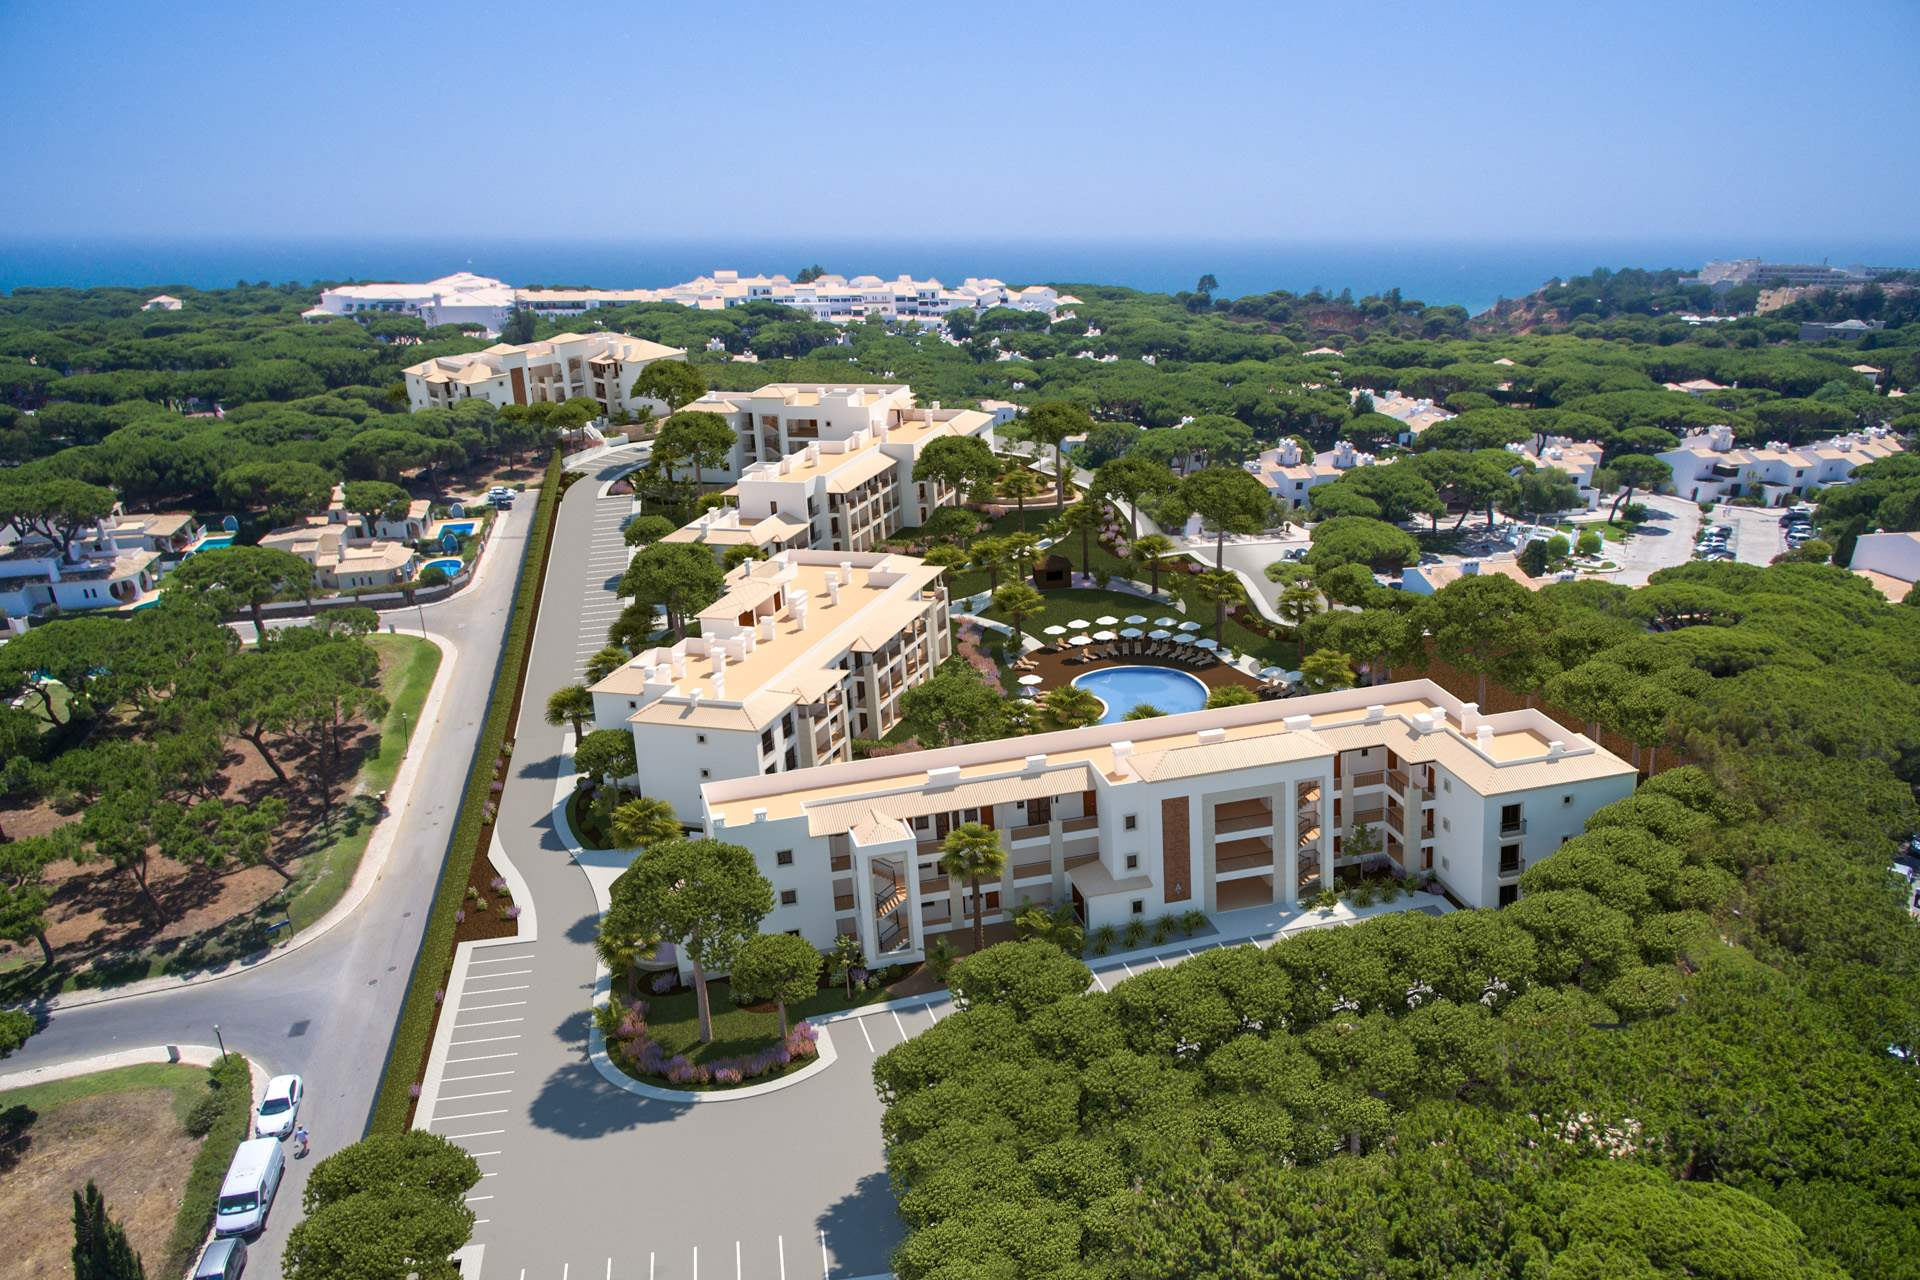 Pine Cliffs Gardens, One Bedroom Suite, S/C Basis, 1 bedroom apartment in Pine Cliffs Resort, Algarve Photo #10